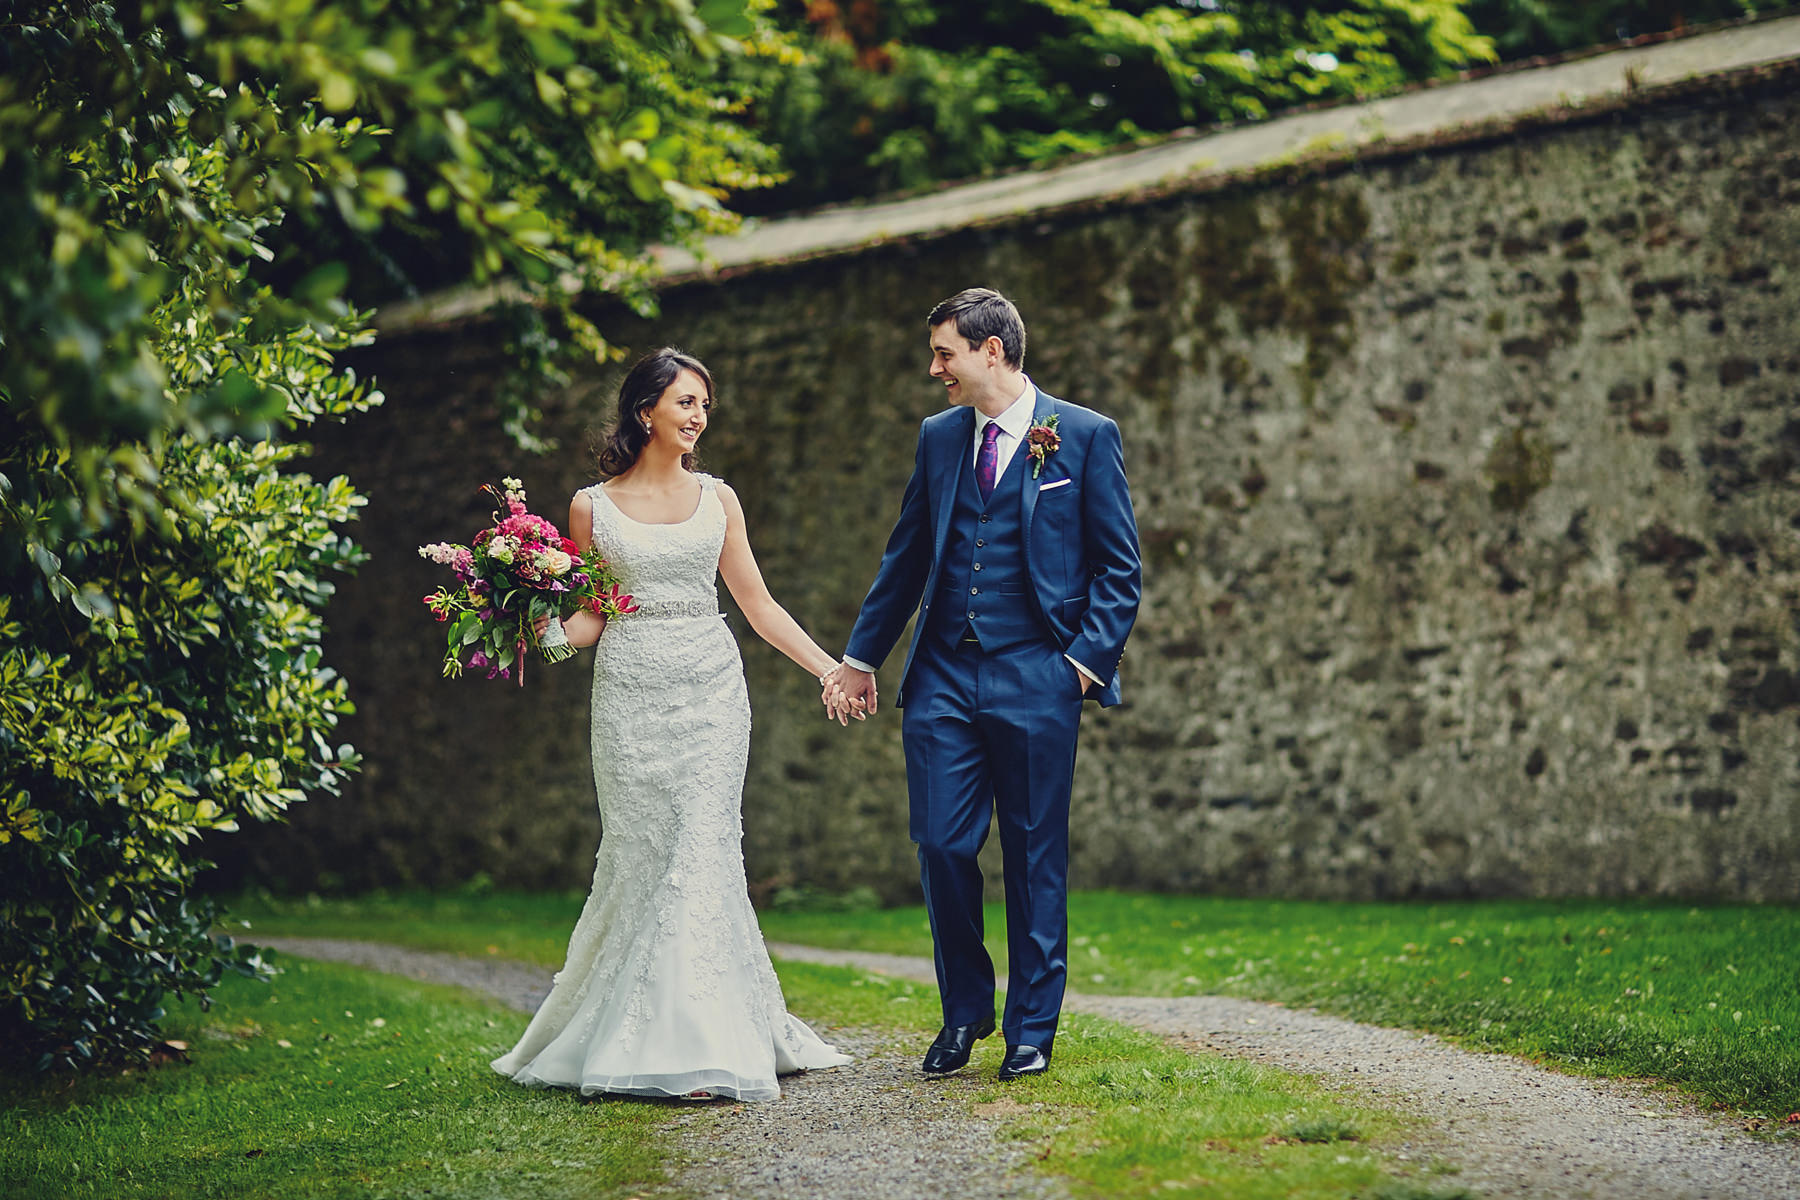 Wedding at Rathsallagh Country House